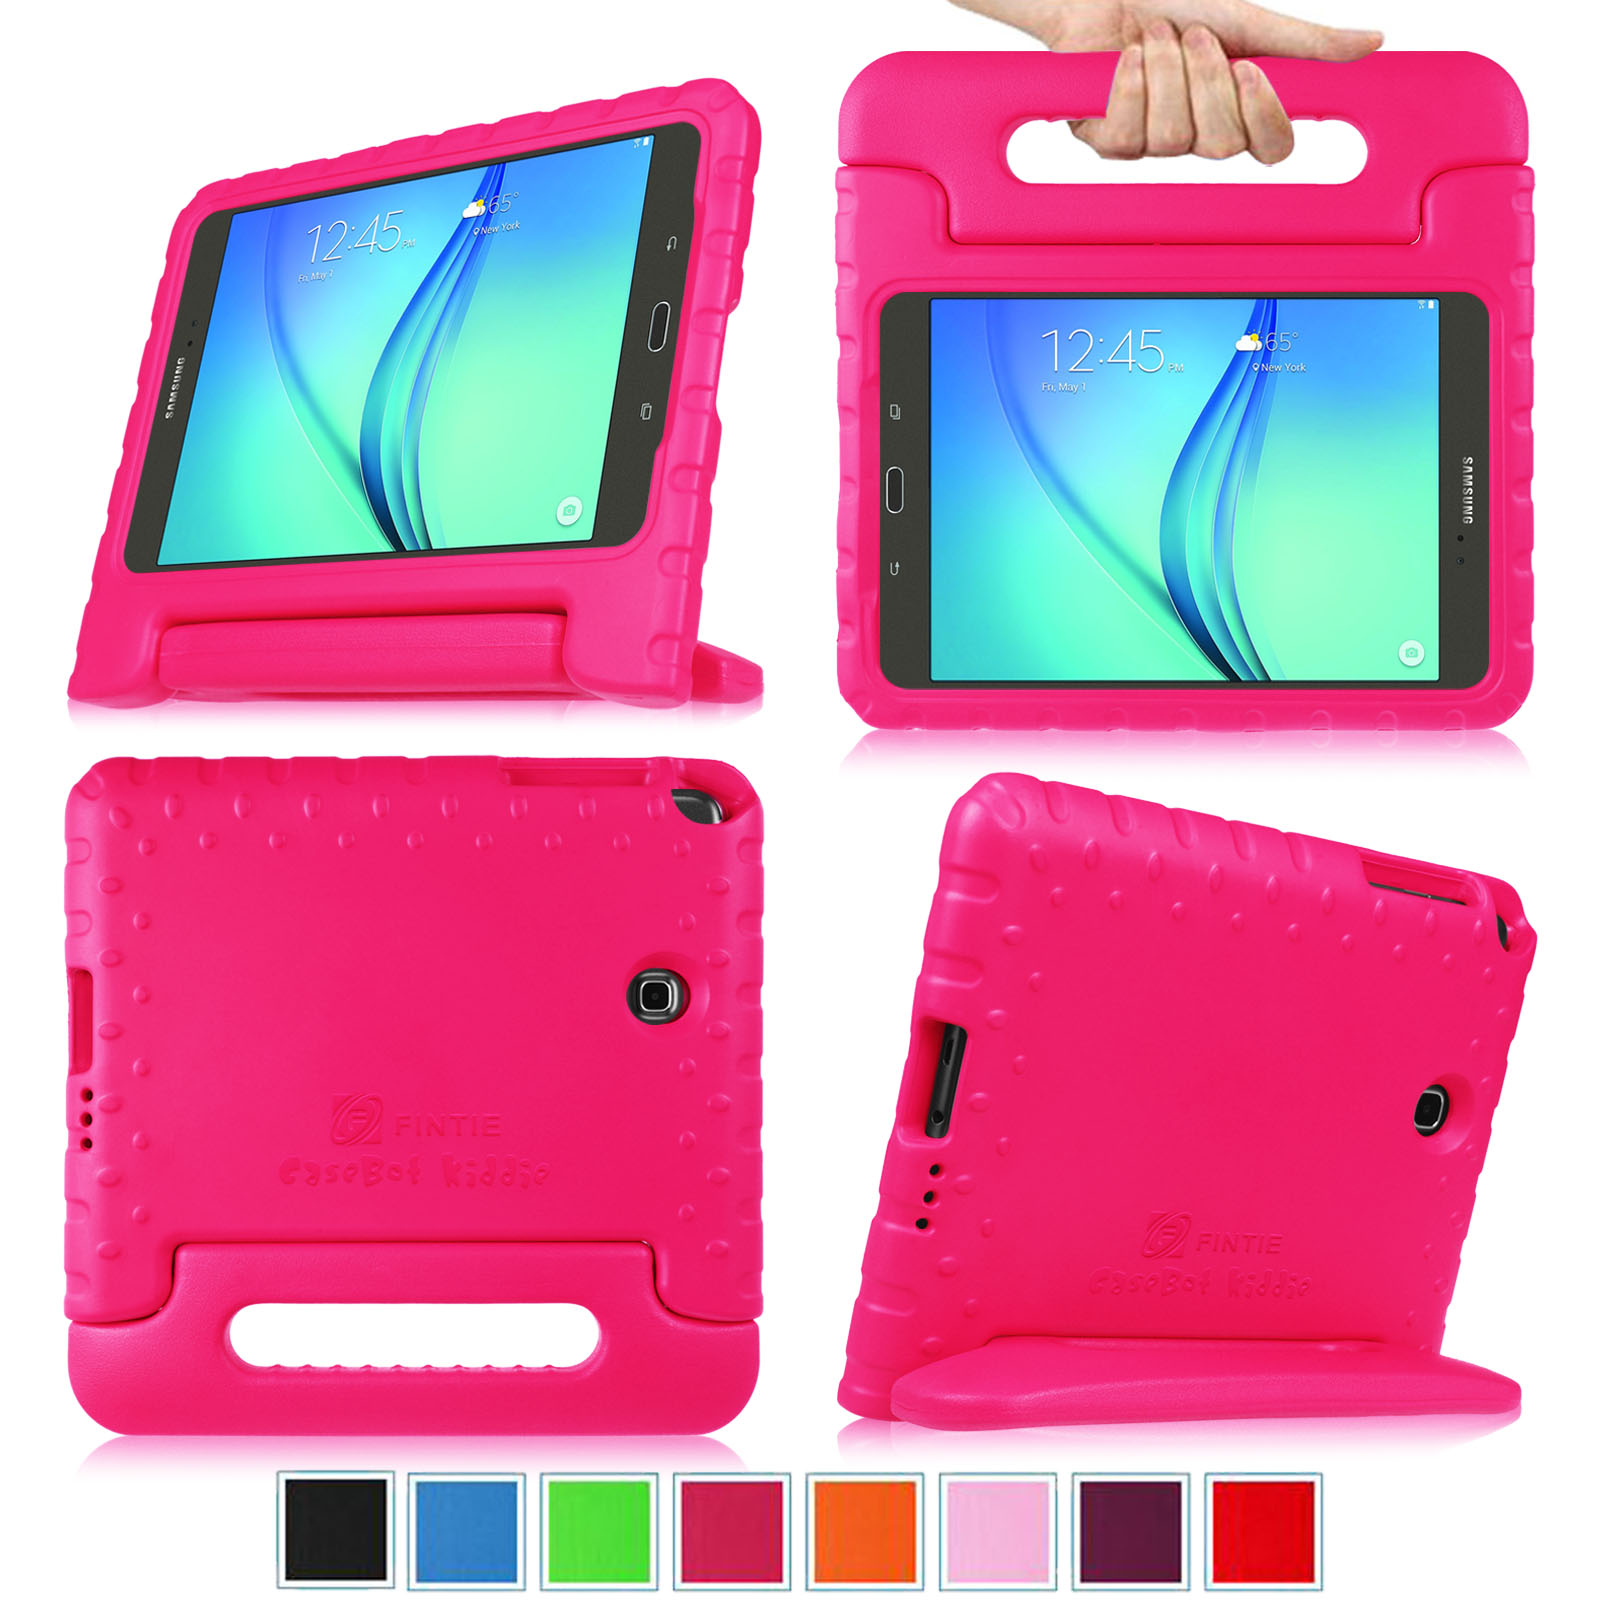 For Samsung Galaxy Tab A 8.0 SM-T350 2015 Model Kiddie Case - Lightweight Shock Proof Handle Stand Cover,  Magenta